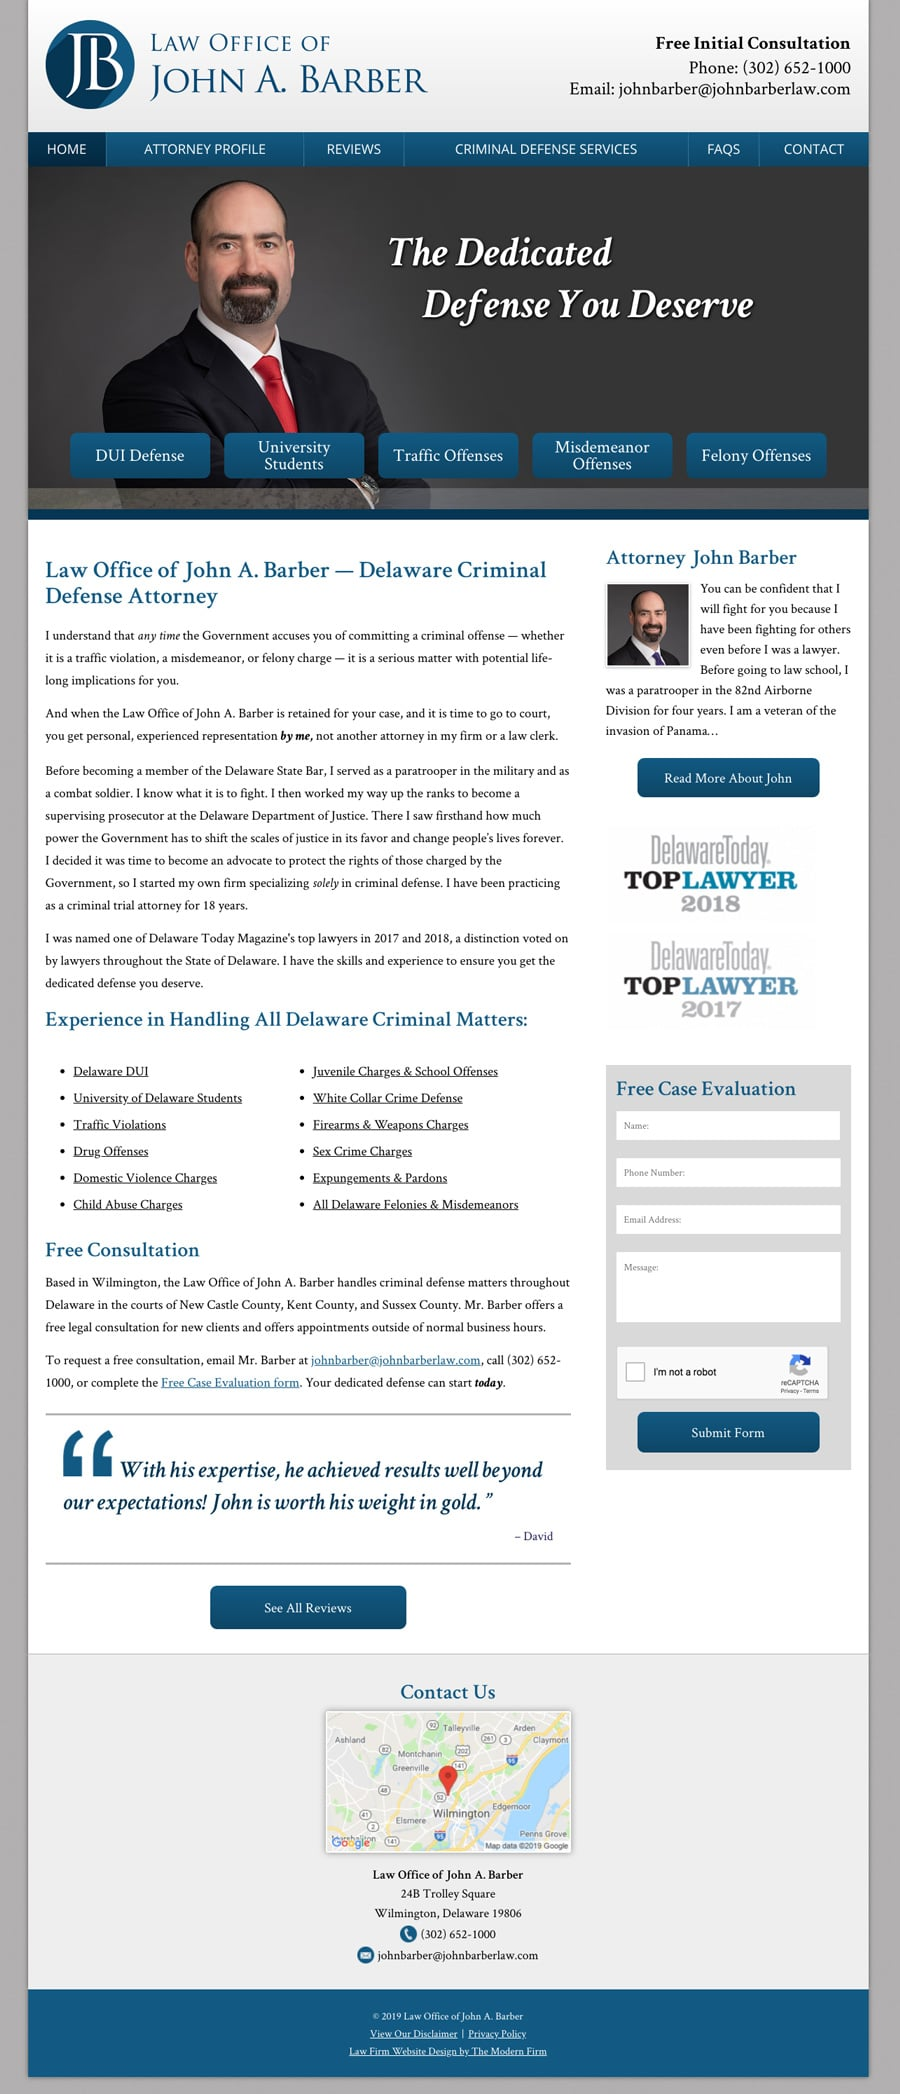 Law Firm Website for Law Office of John A. Barber